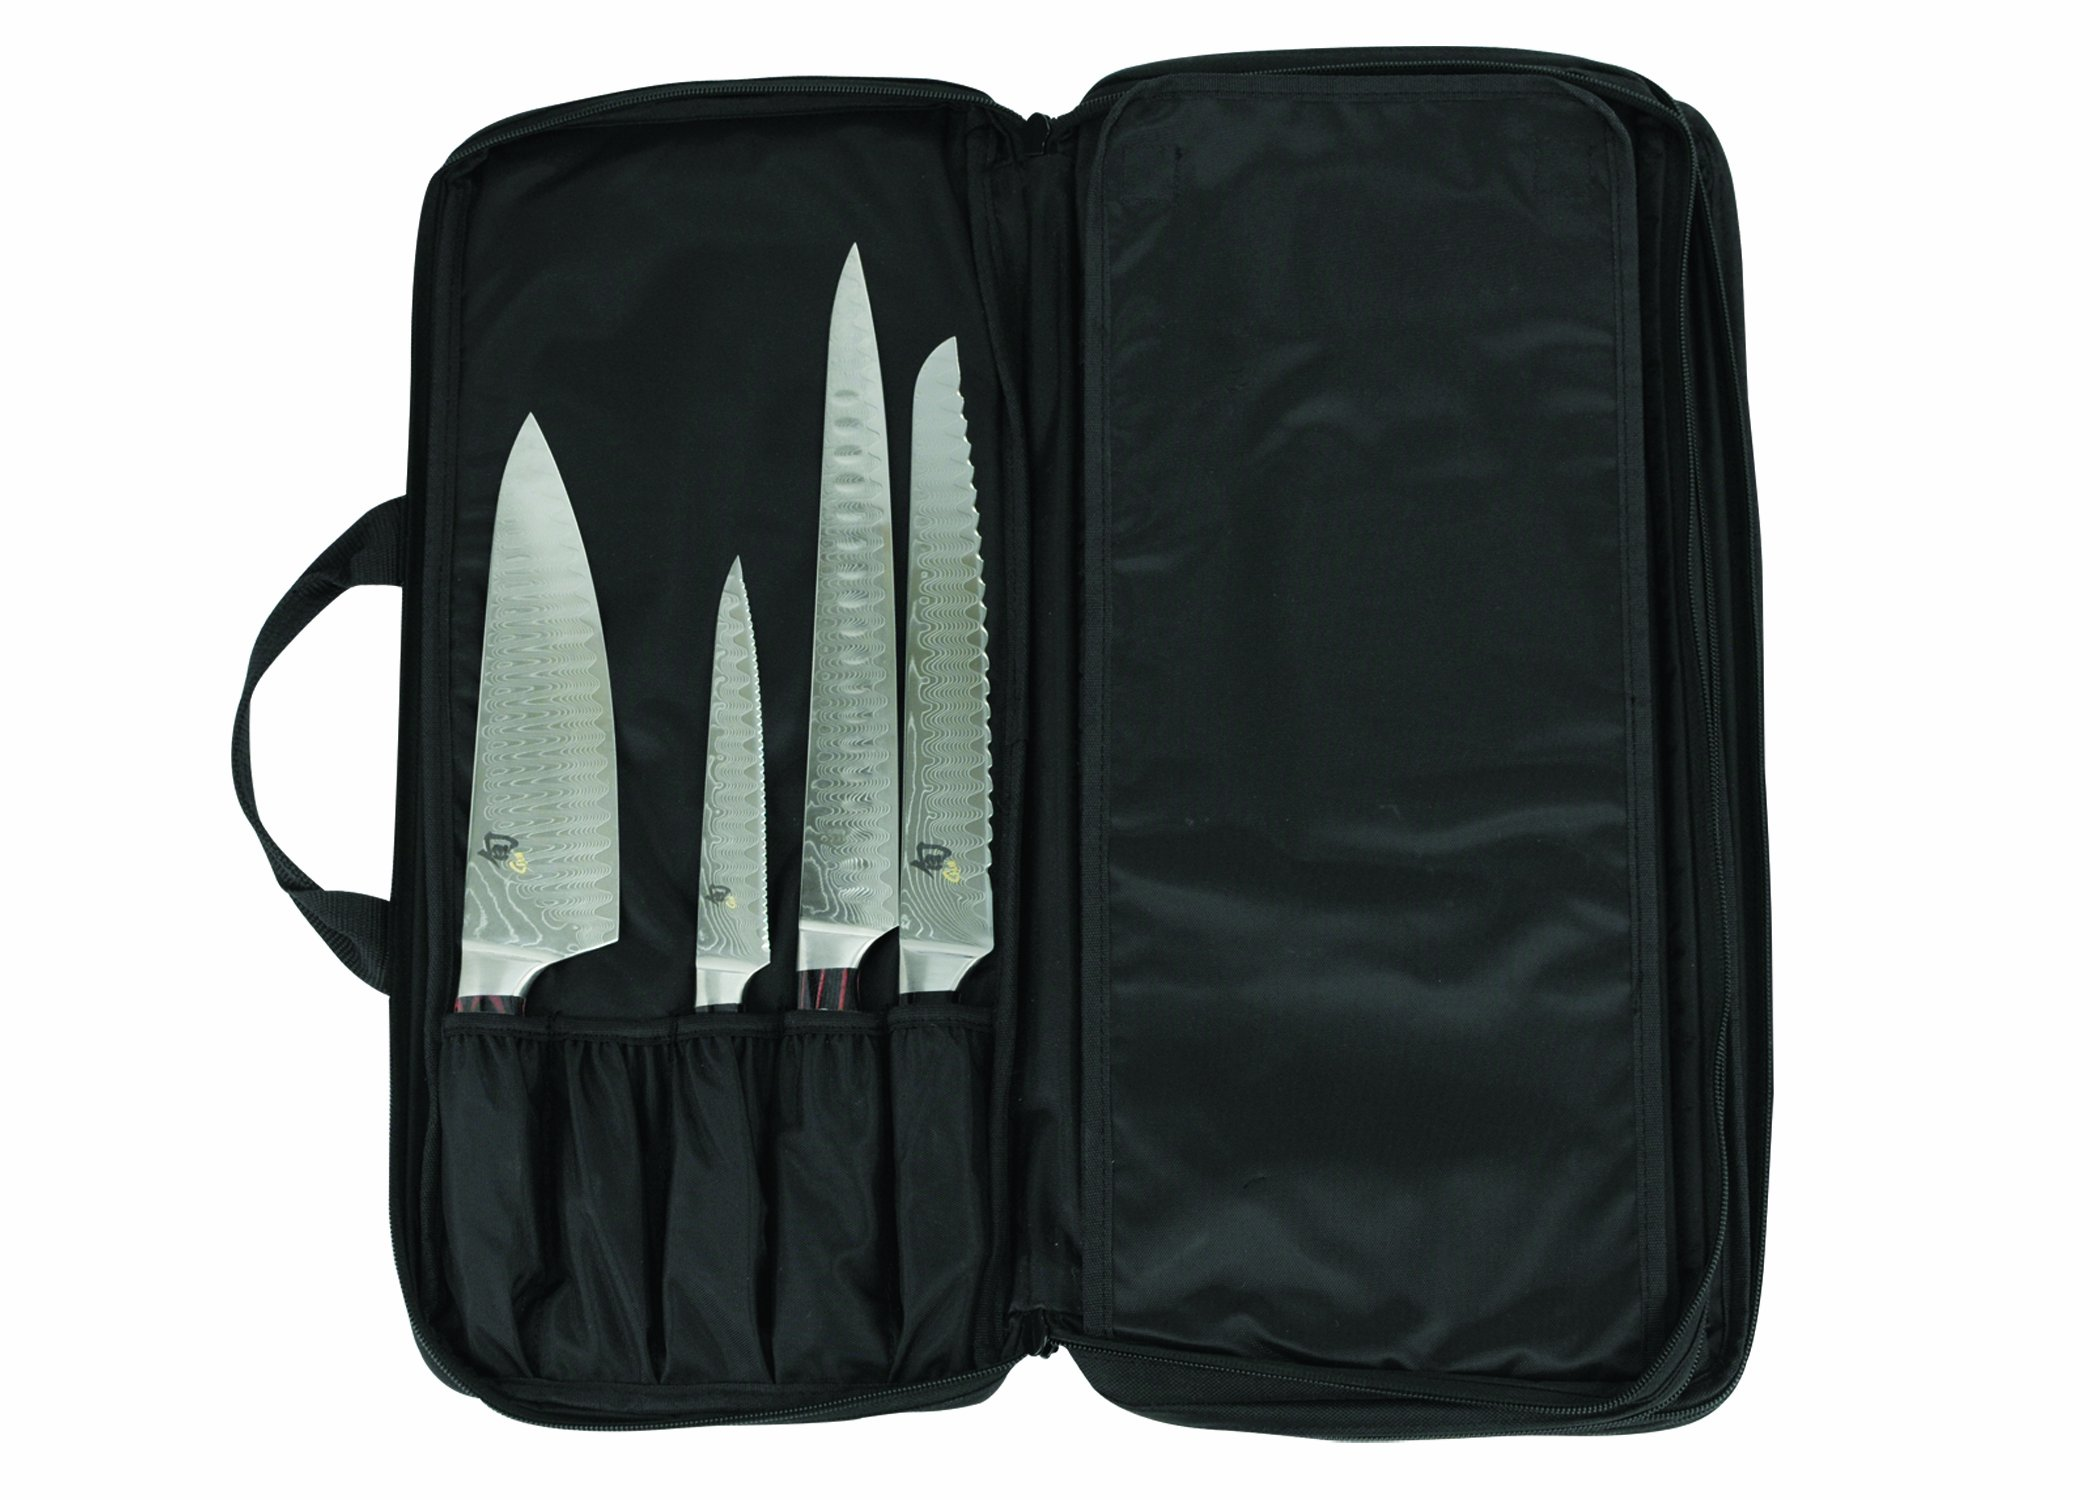 Shun DM0822 20-Slot Chef's Knife Case